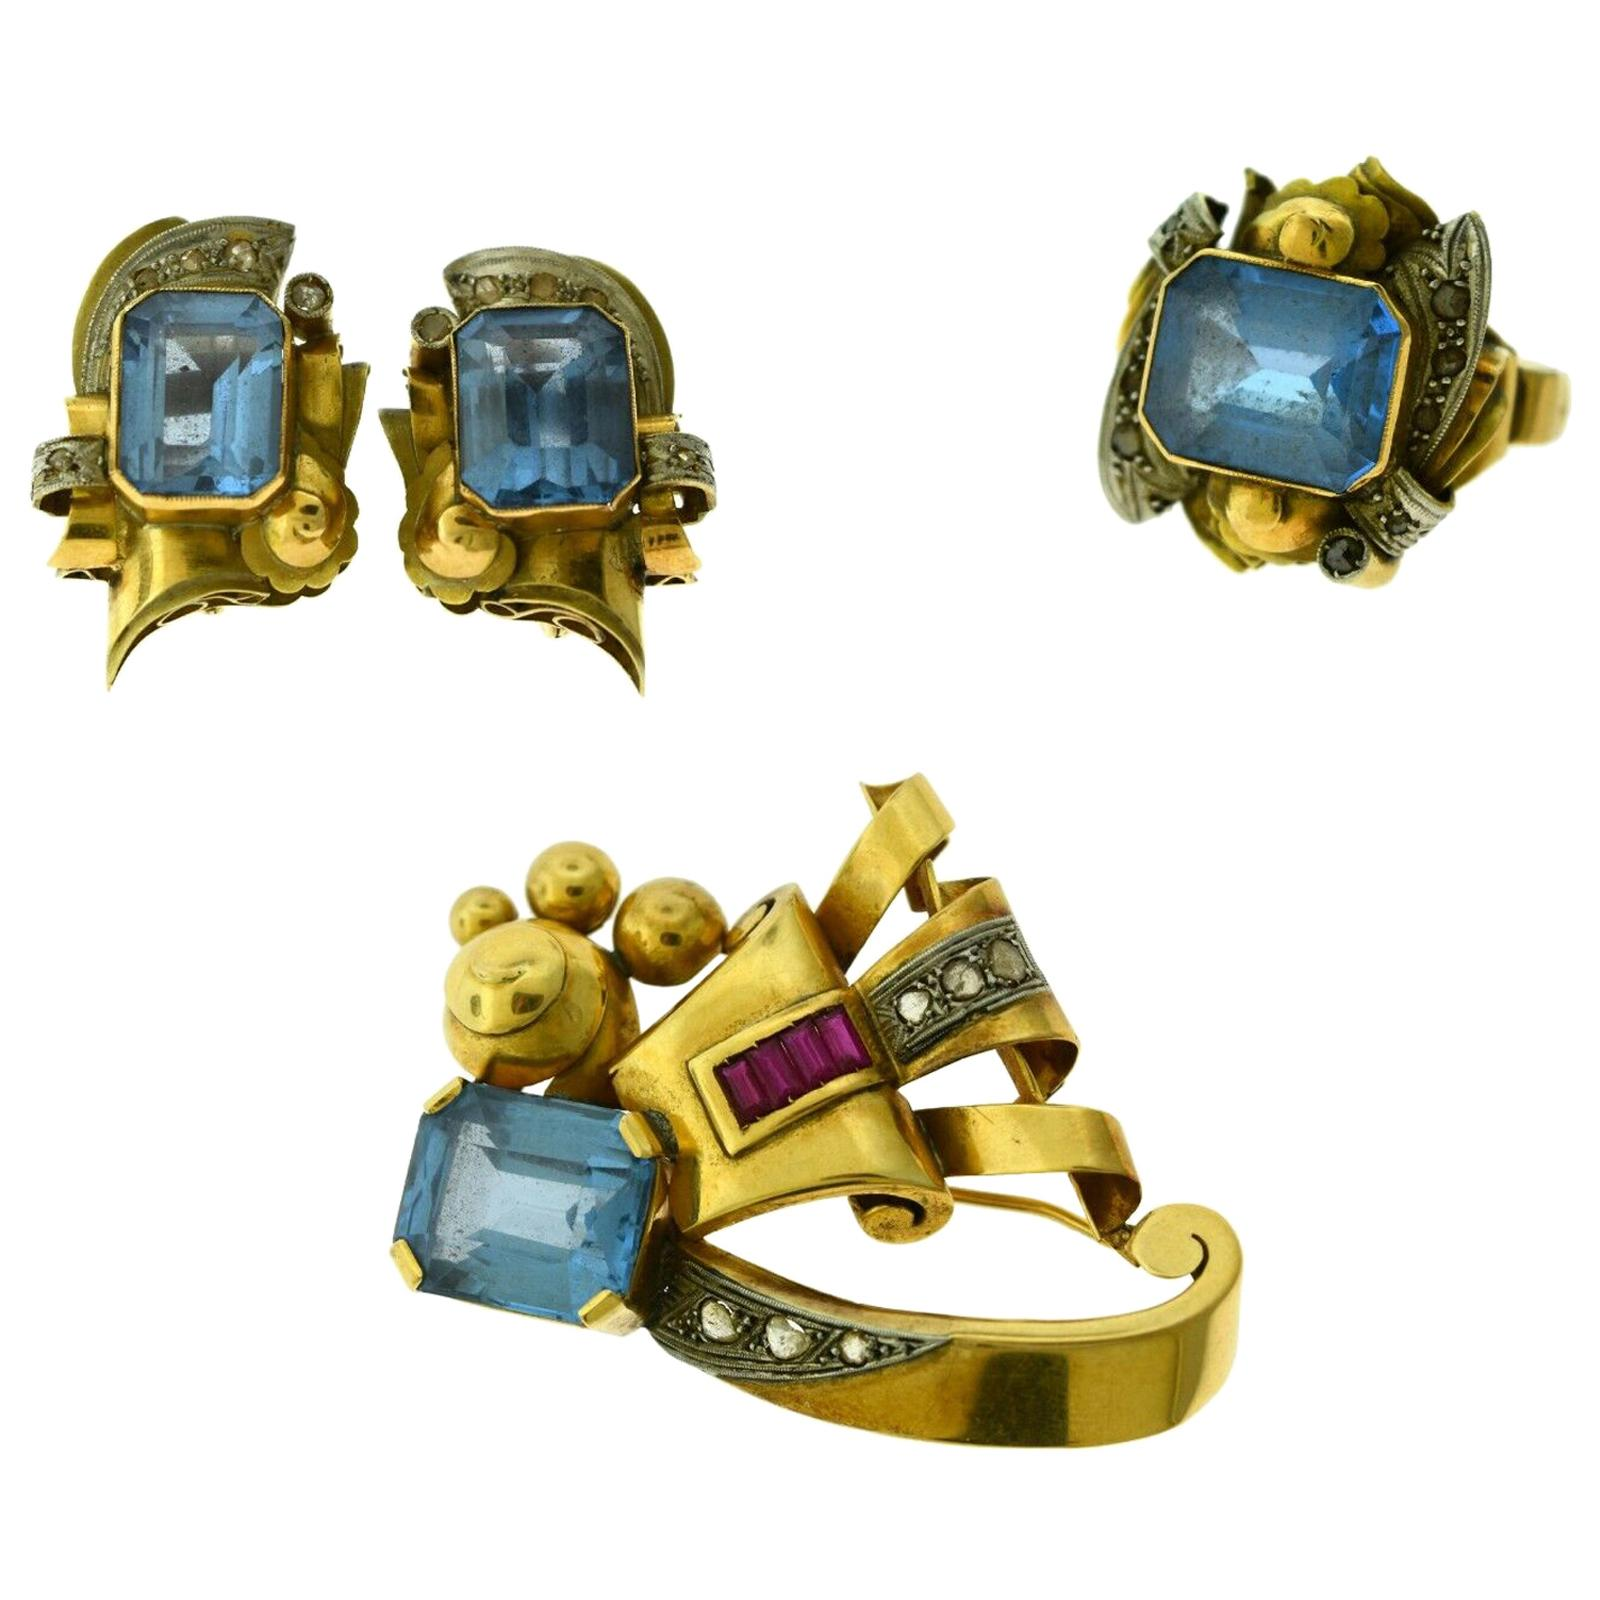 Blue Topaz, Ruby, Diamond Estate 18k Yellow Gold Brooch, Earring, and Ring Set